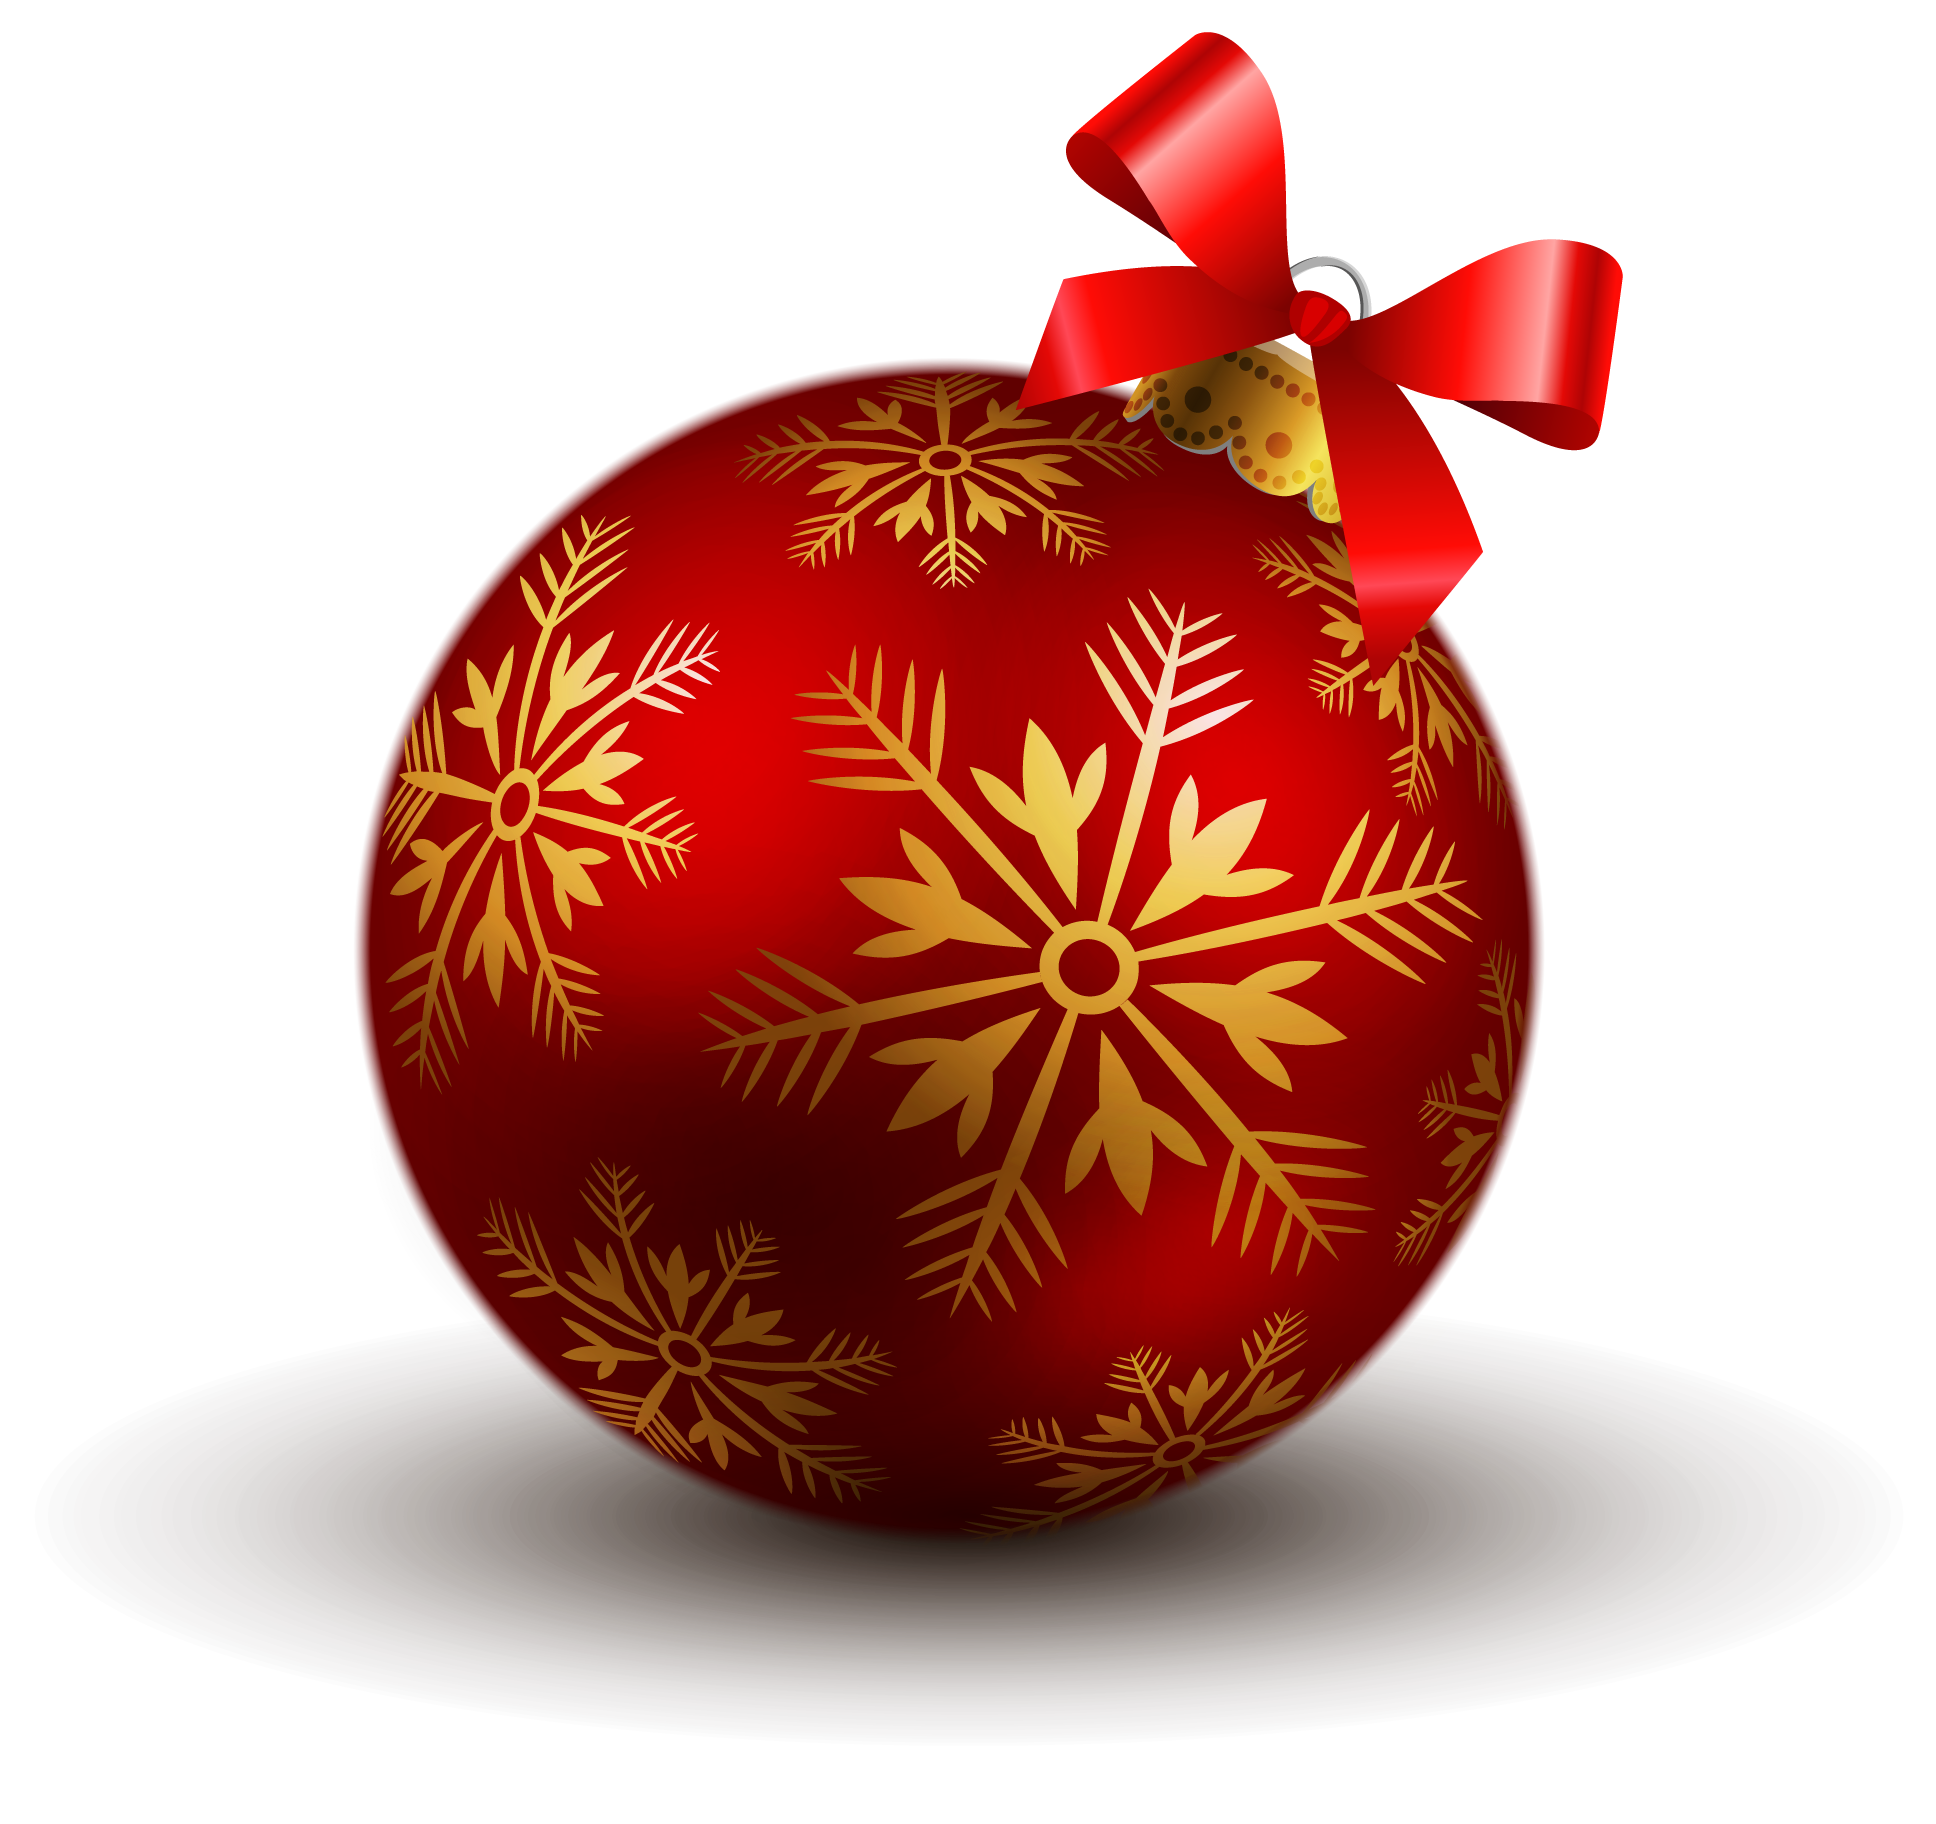 Christmas ornament transparent background png. Red ball clipart gallery